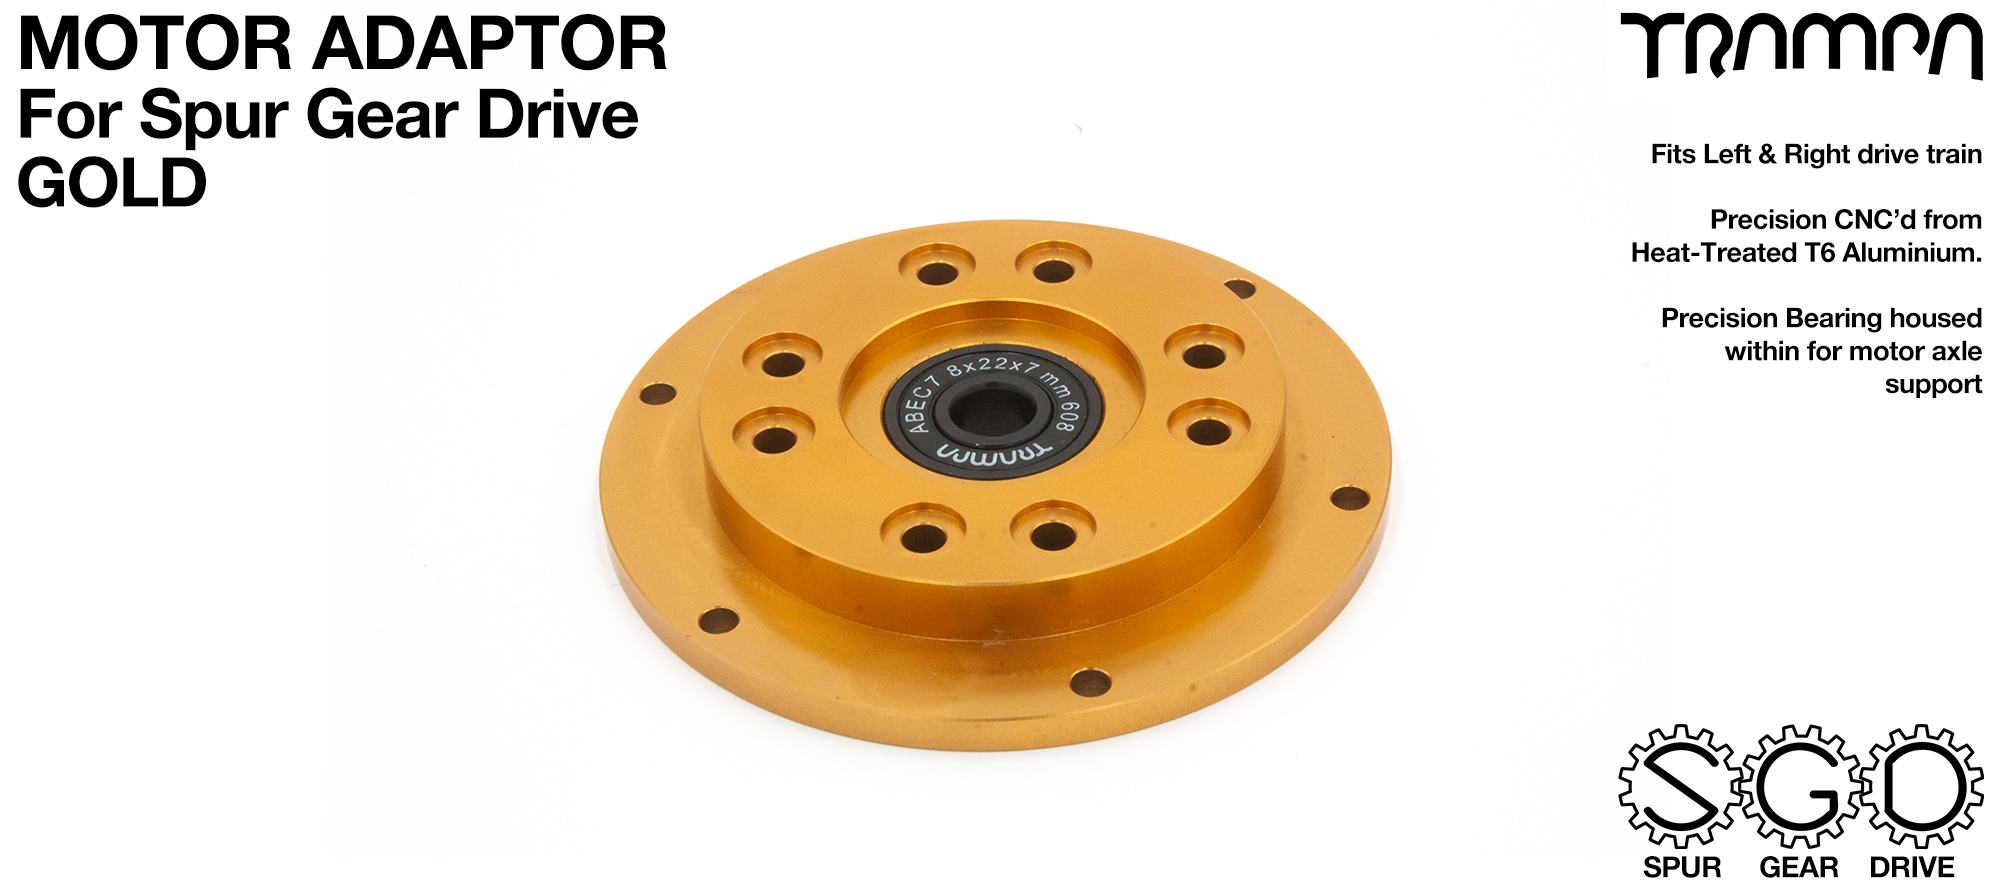 Motor Adapter Plate - GOLD